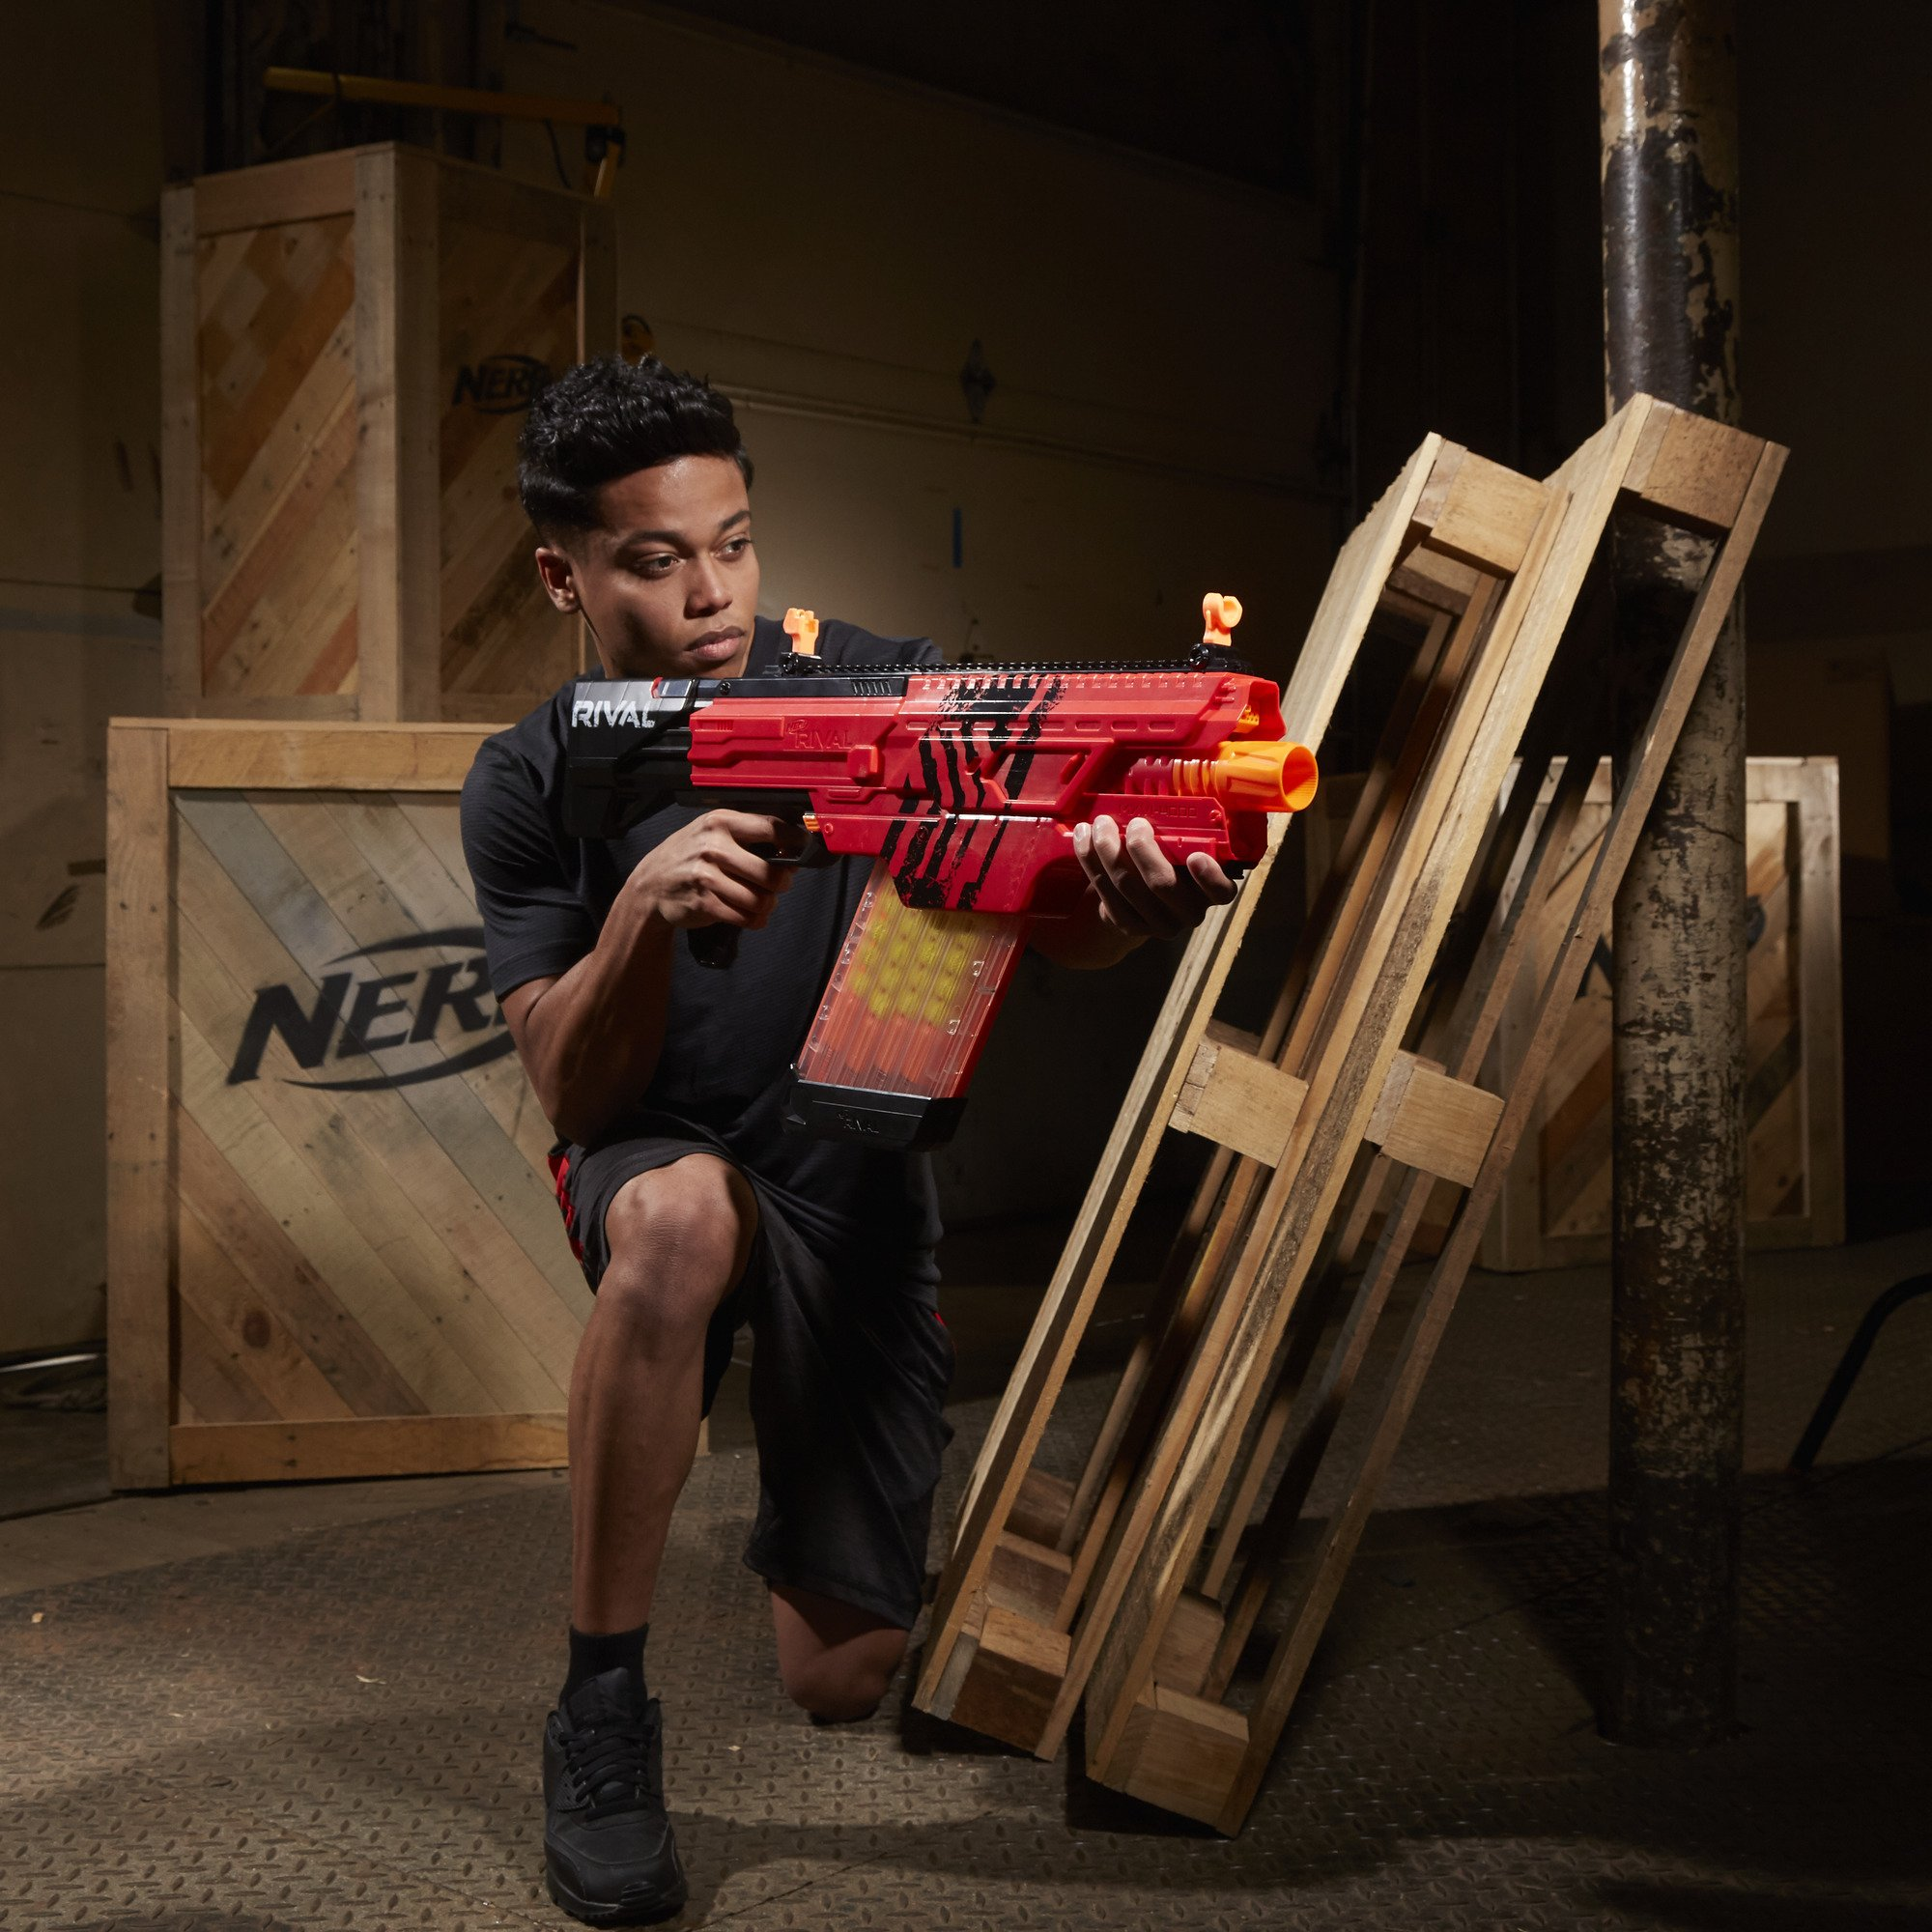 Nerf Rival Khaos MXVI-4000 Blaster (Red) by NERF (Image #4)